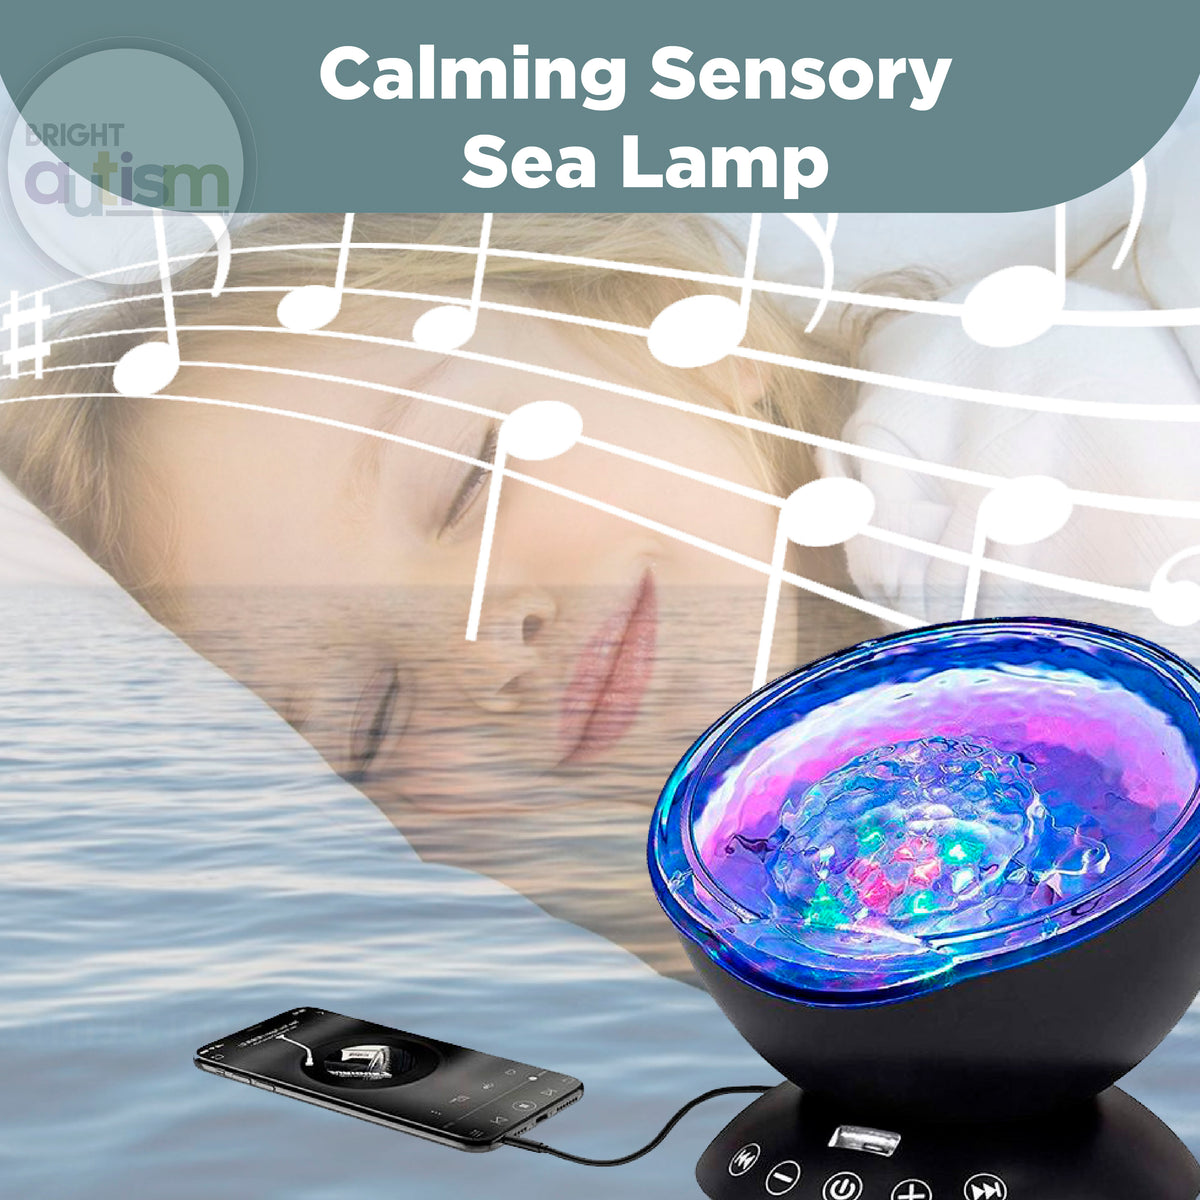 A baby sleeping with Calming Sensory Sea Lamp